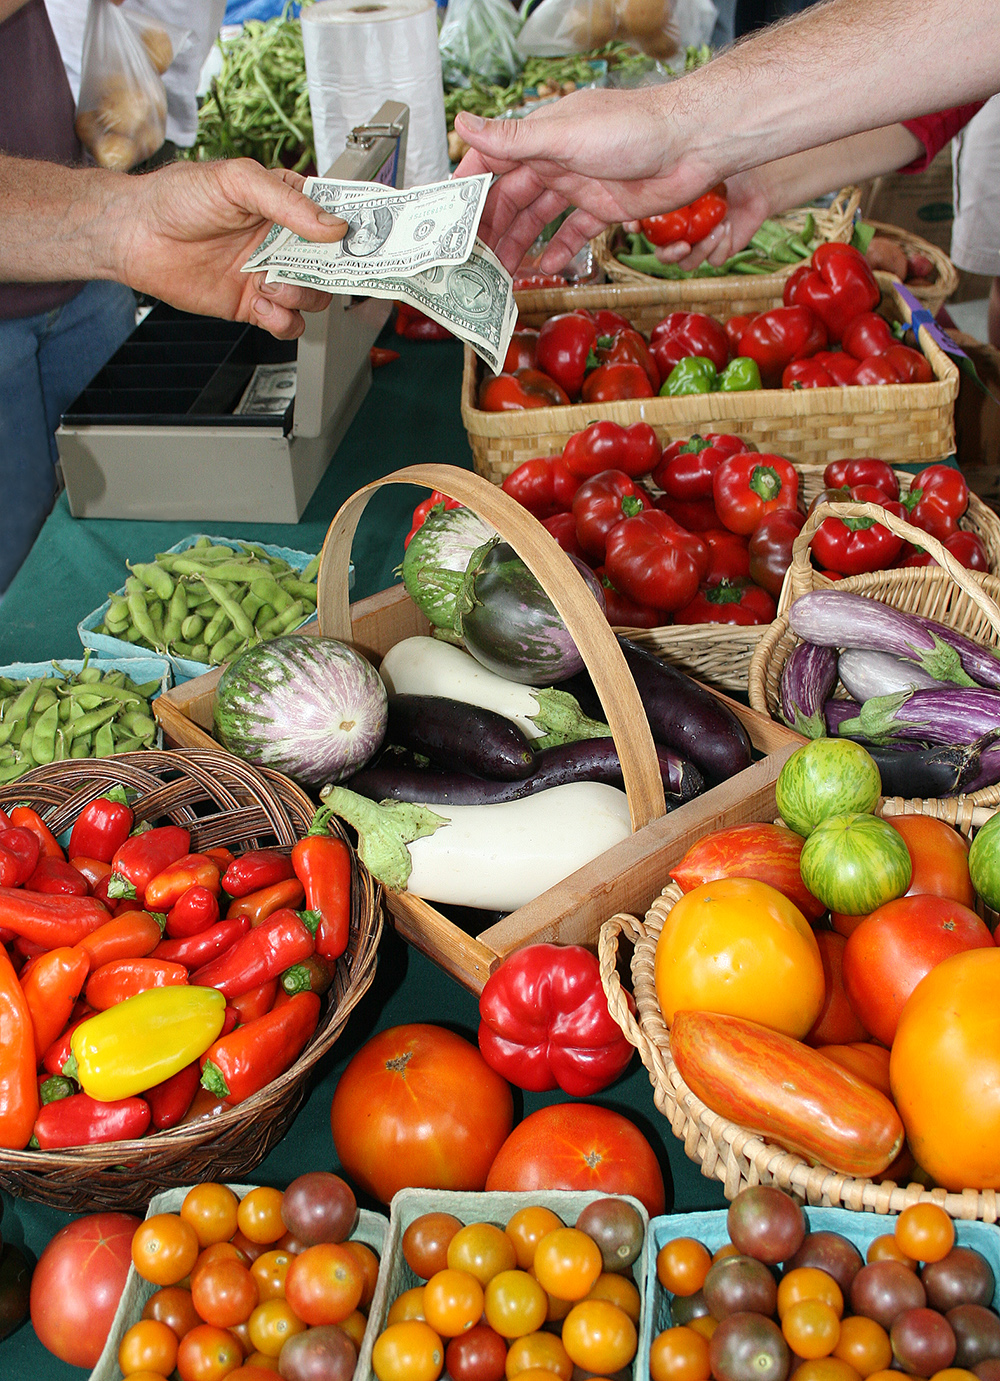 local produce at the farmers' market